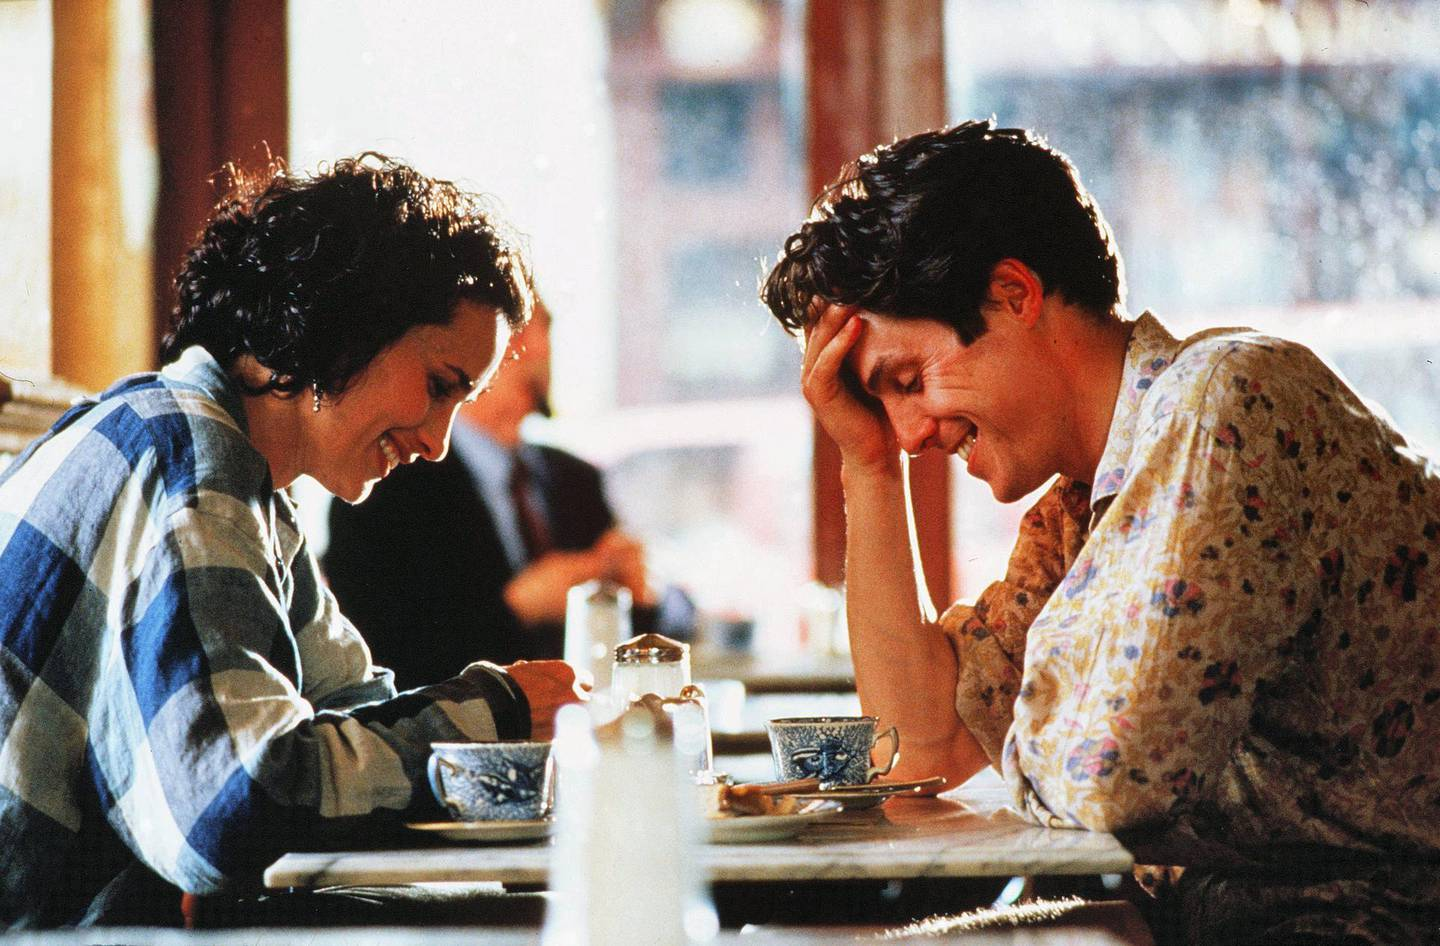 Editorial use only. No book cover usage.Mandatory Credit: Photo by Stephan F Morley/Polygram/Working Title/Kobal/Shutterstock (5884693e)Andie Macdowell, Hugh GrantFour Weddings and A Funeral - 1994Director: Mike NewellPolygram/Channel 4/Working TitleBRITAINScene StillComedyQuatre mariages et un enterrement